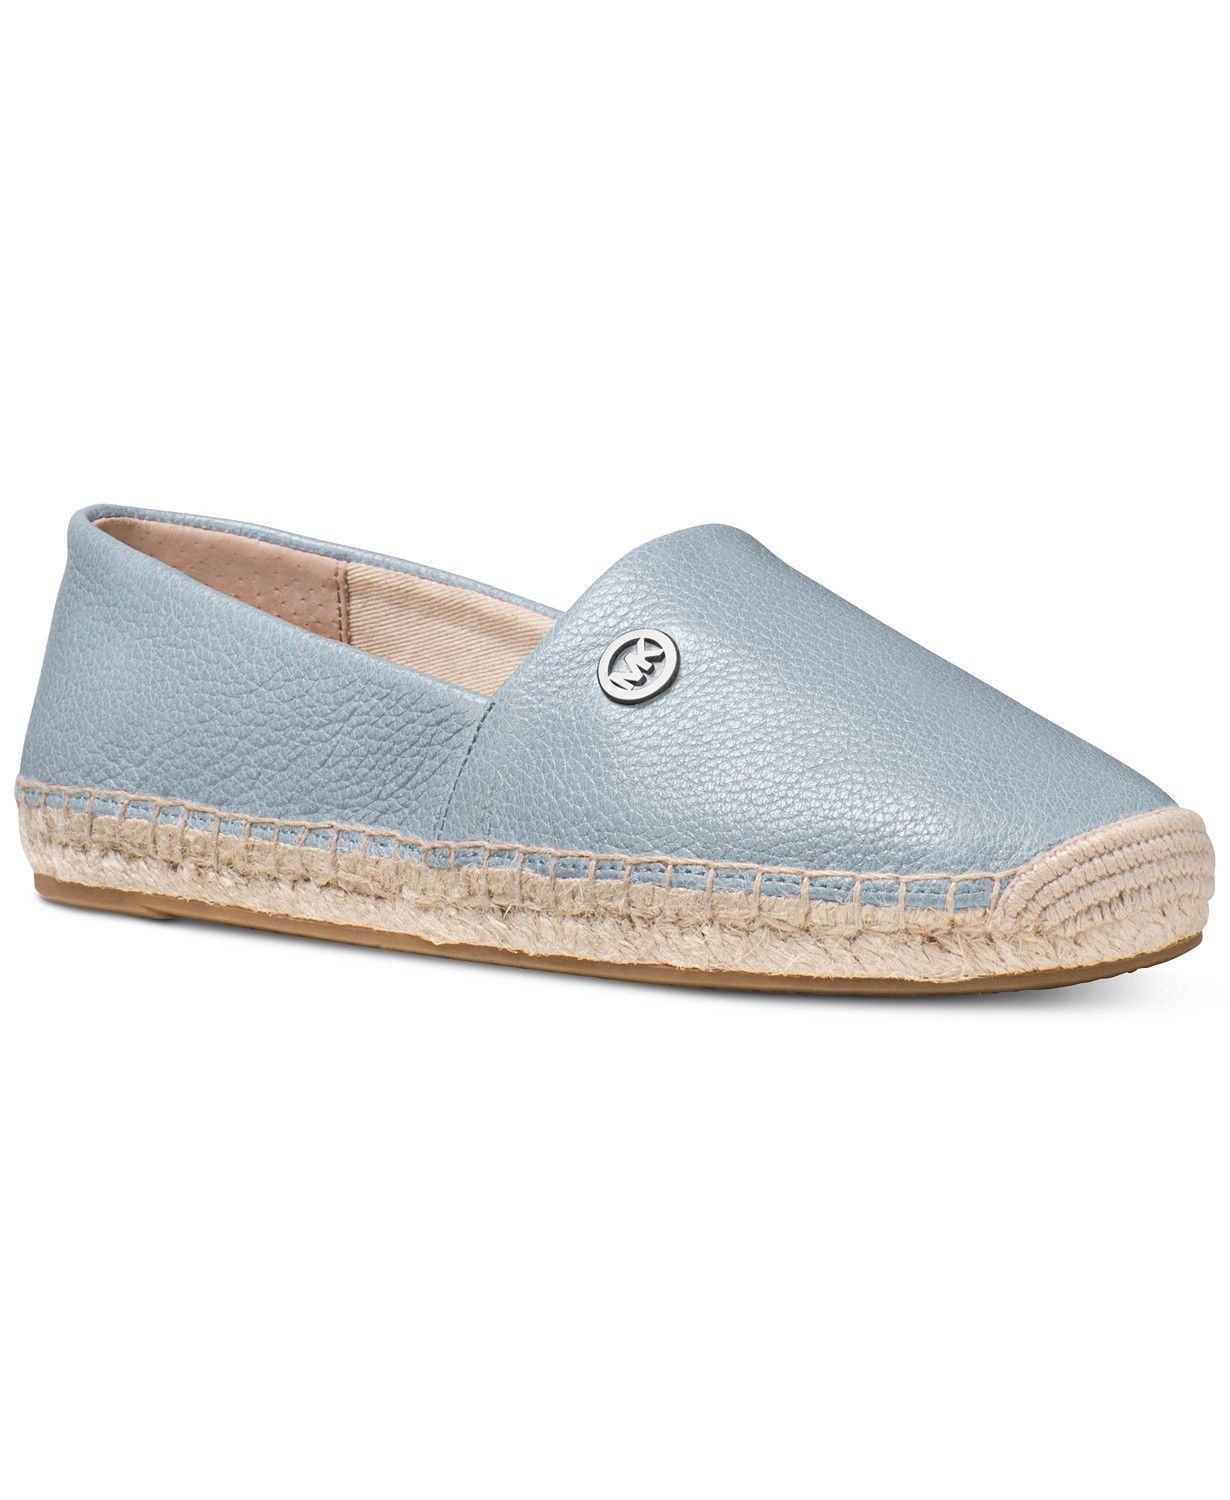 Michael Kors MK Women's Kendrick Leather Slip On Flats Shoes Pale Blue